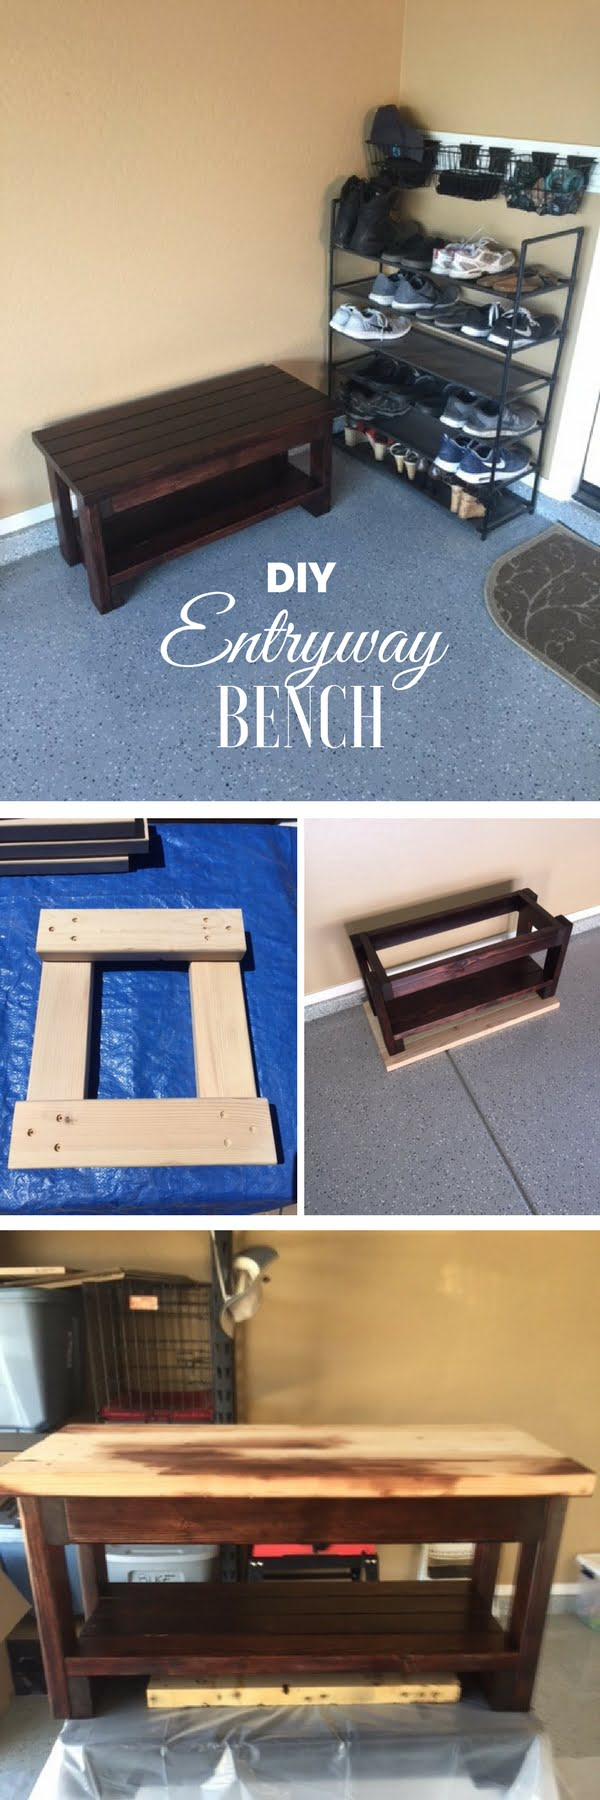 20 Crafty 2x4 DIY Projects That You Can Easily Make - Check out how to make a DIY wooden entryway bench from 2x4s